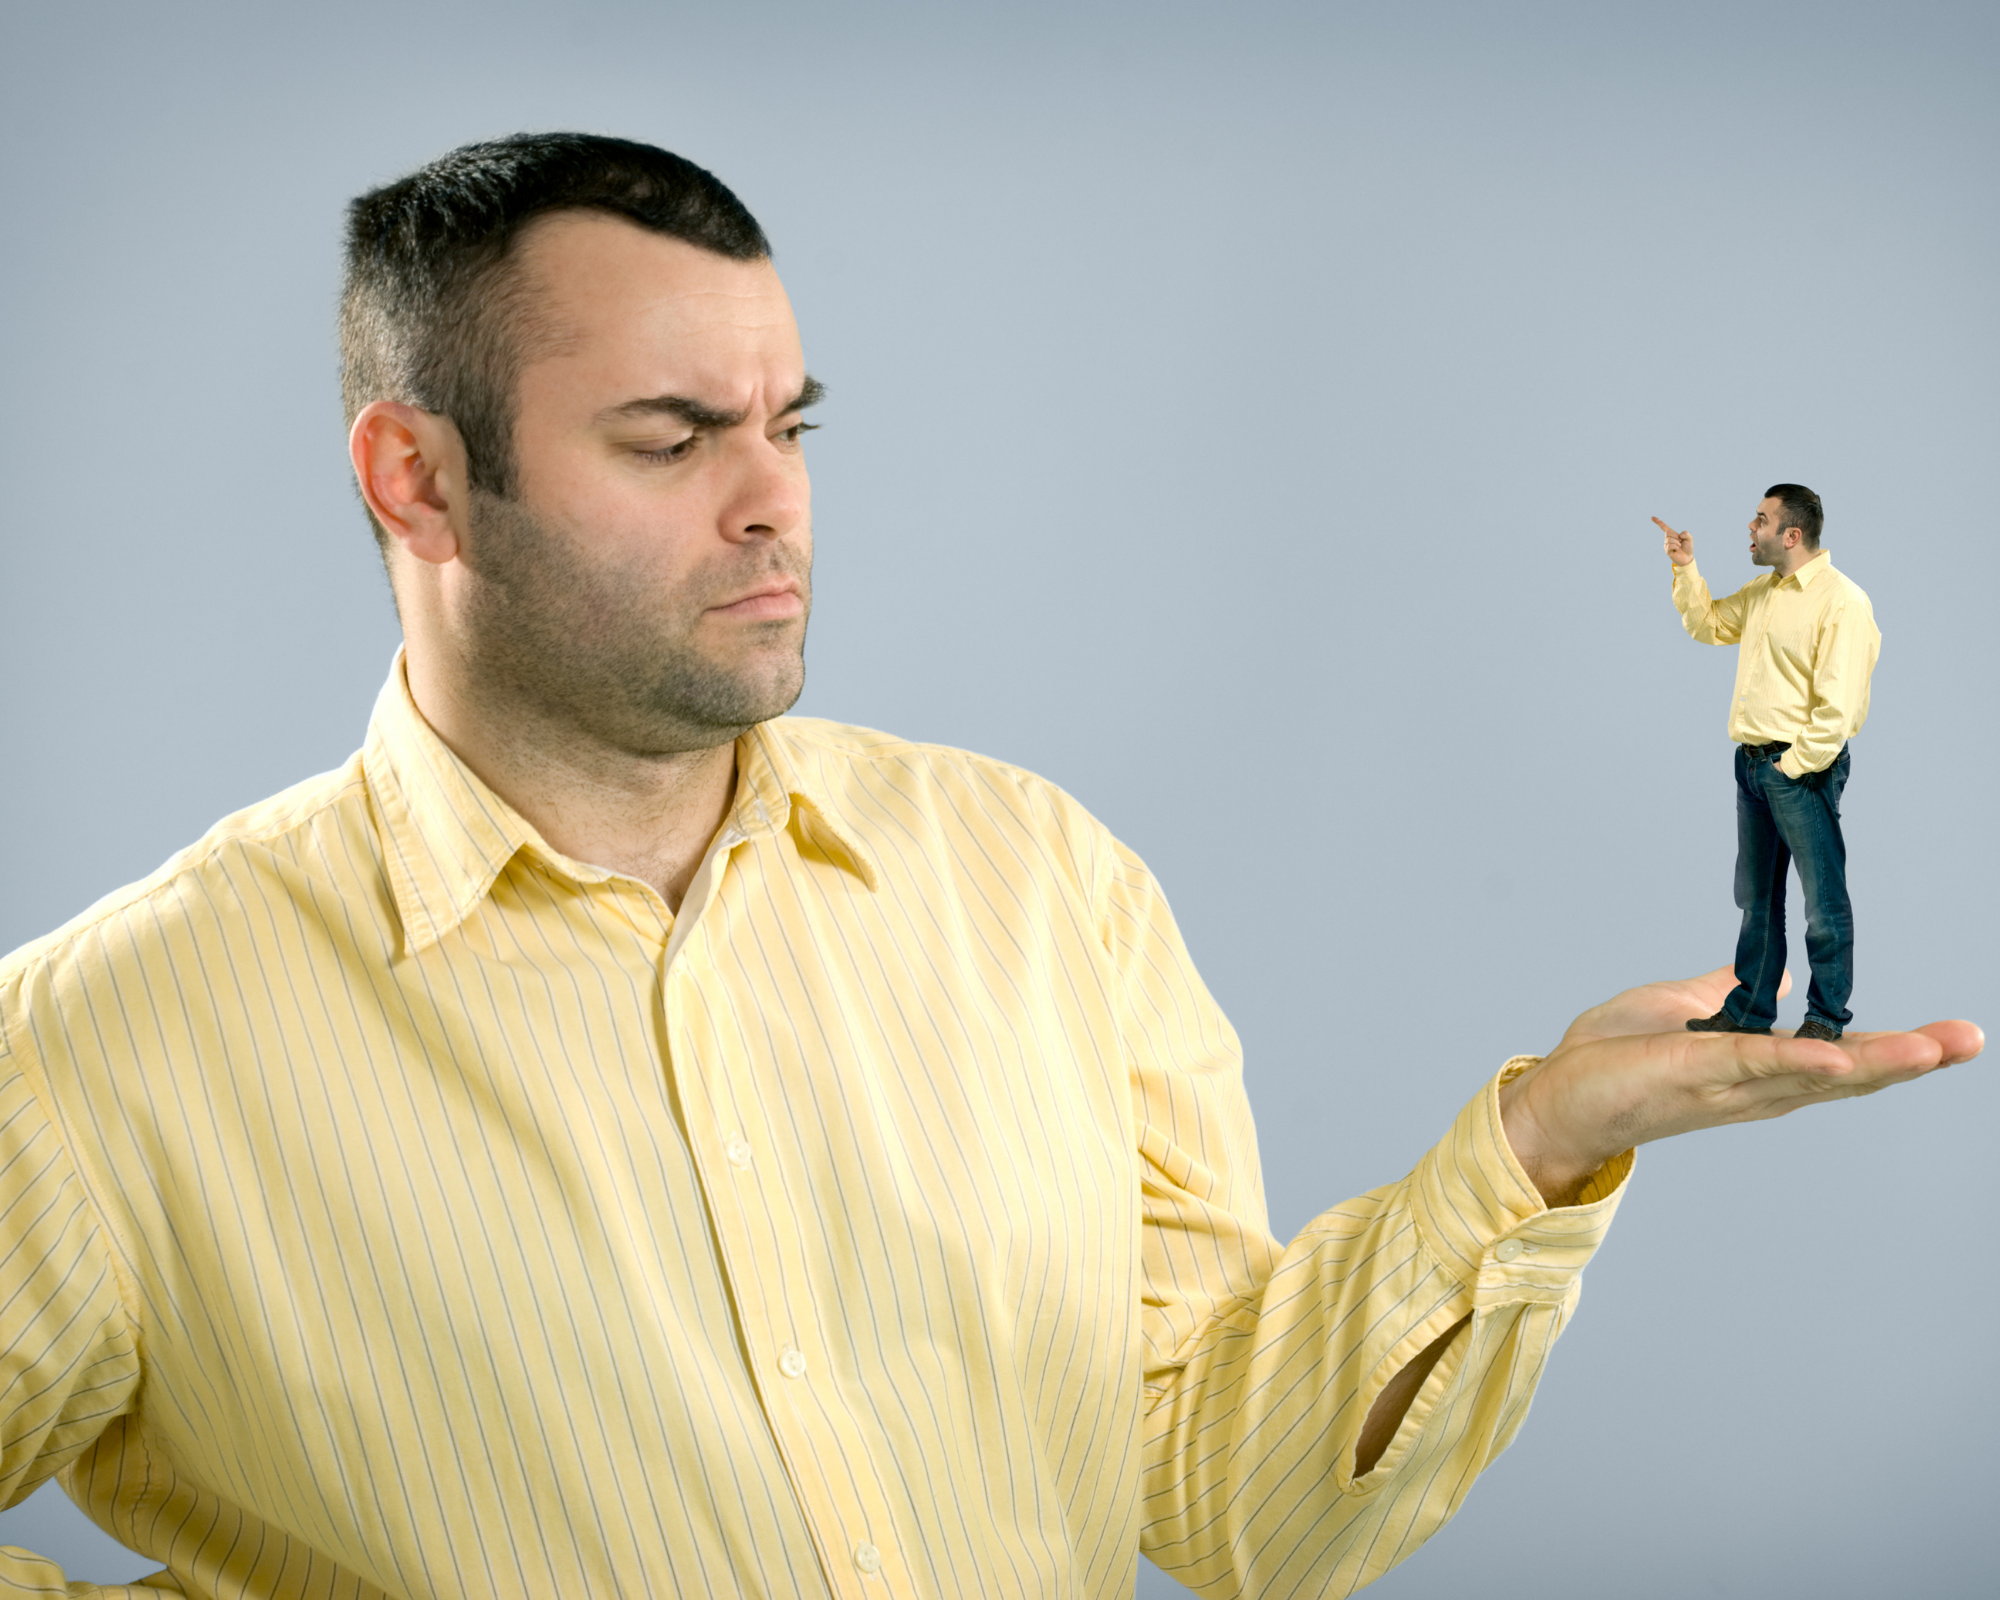 Man with negative self-talk. Man frowning with small version of himself on his palm and pointing accusingly